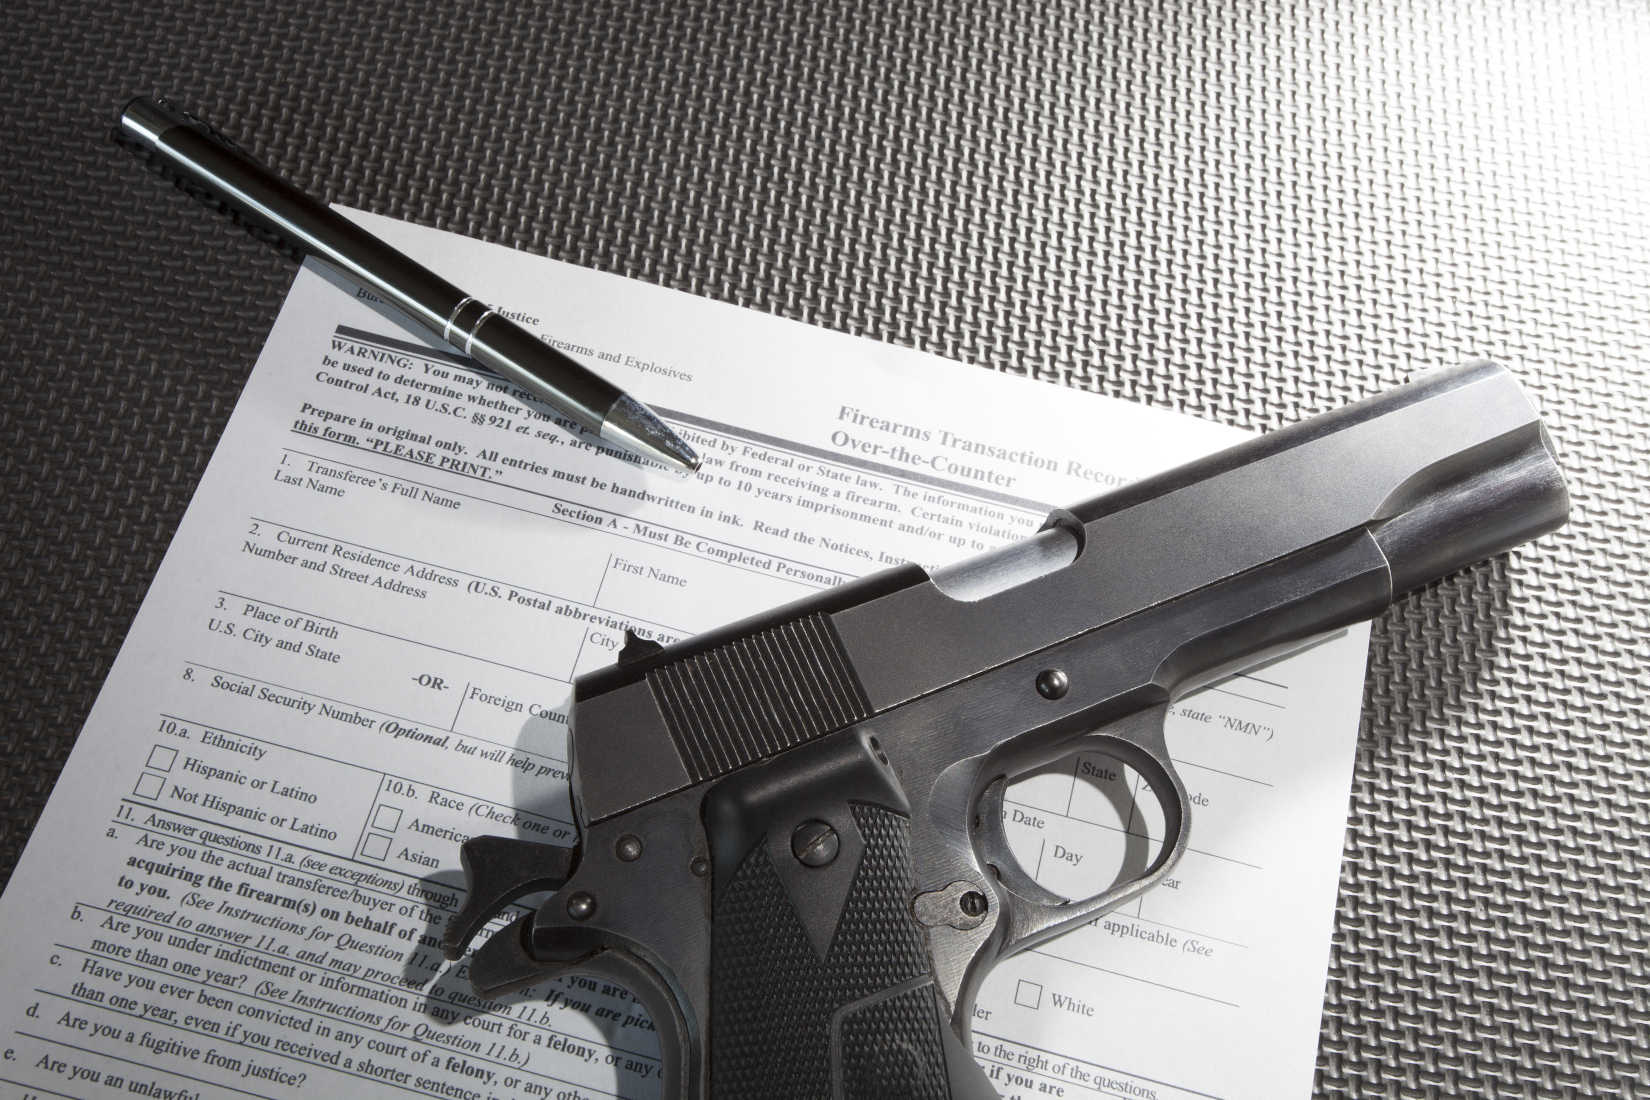 Court Says Connecticut Authorities Must Keep Issuing Gun Permits During Pandemic